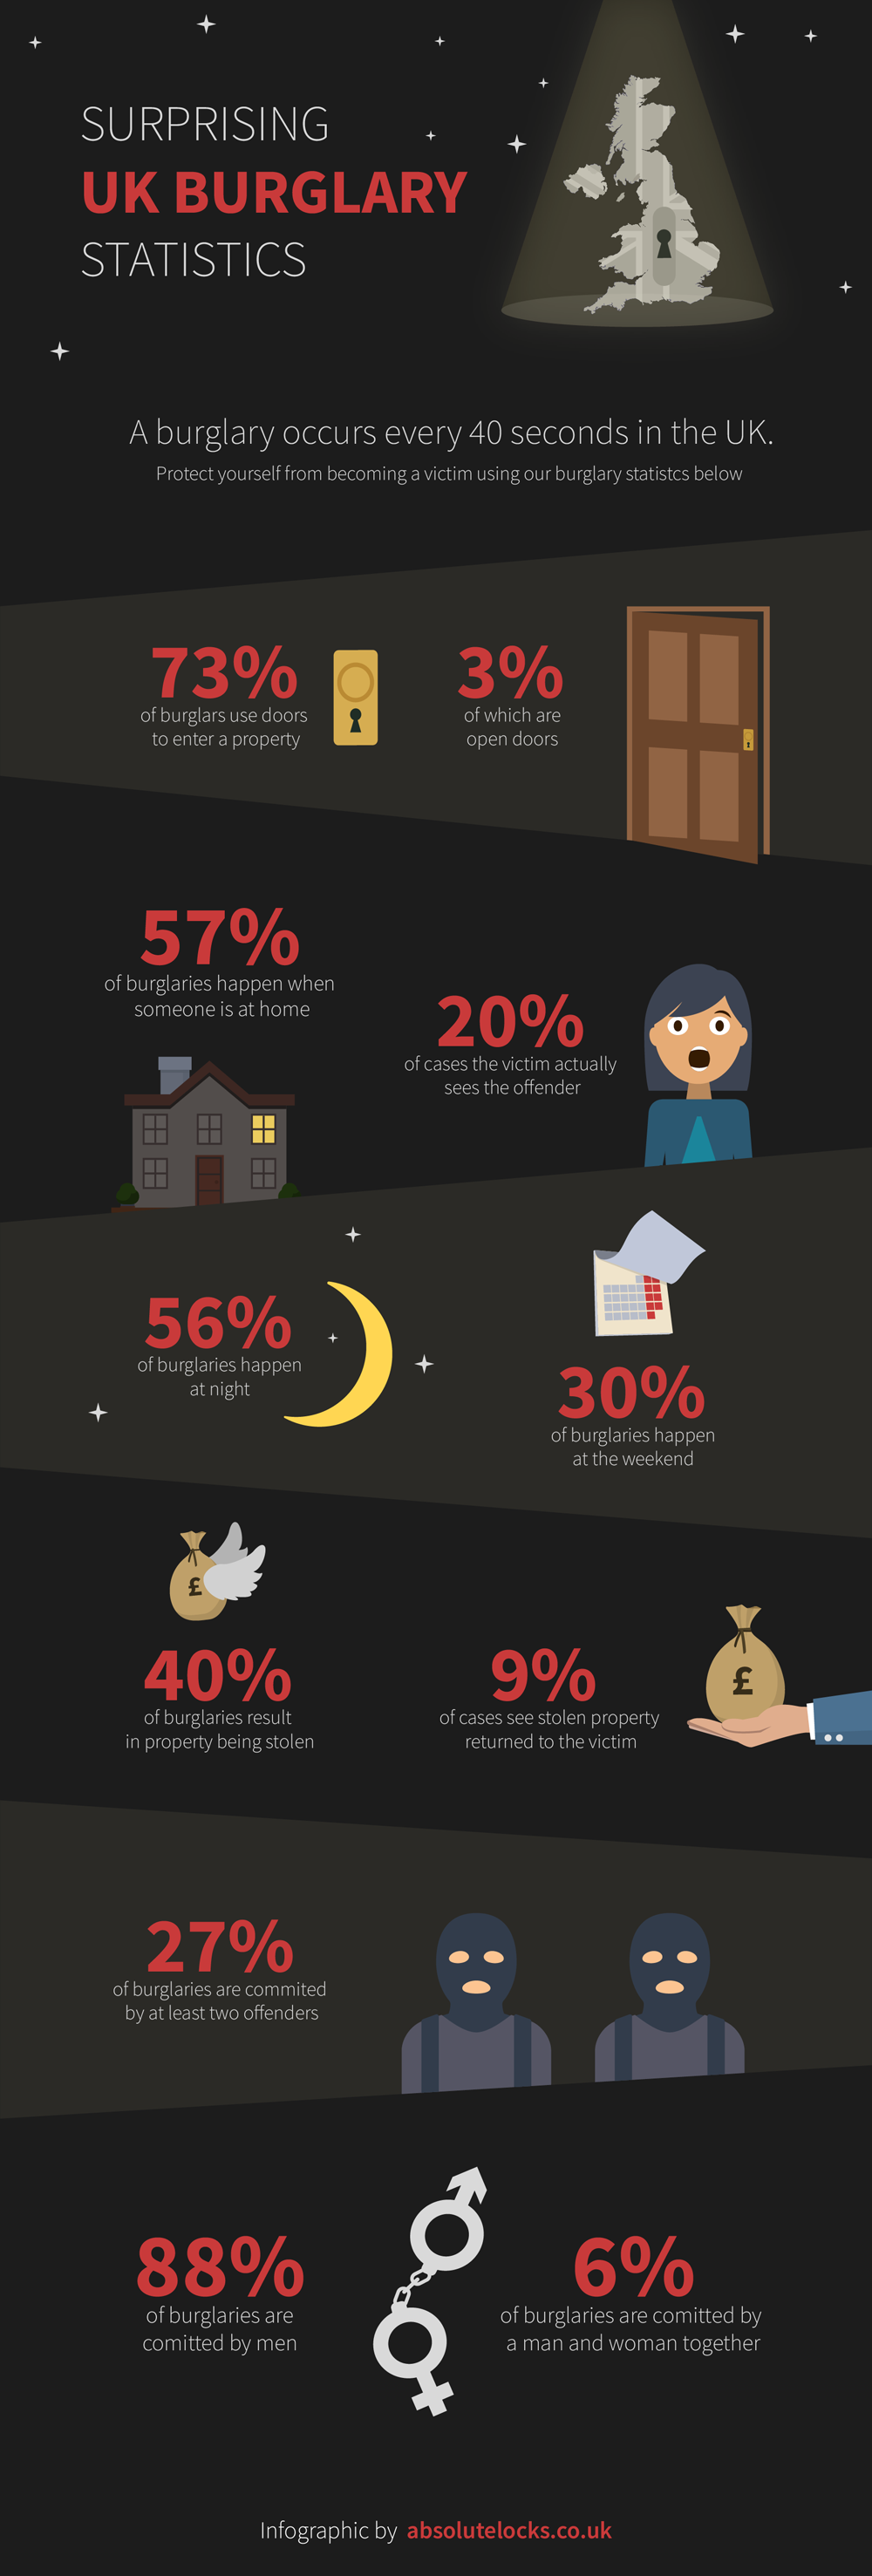 Surprising UK Burglary Statistics by Absolute Locks